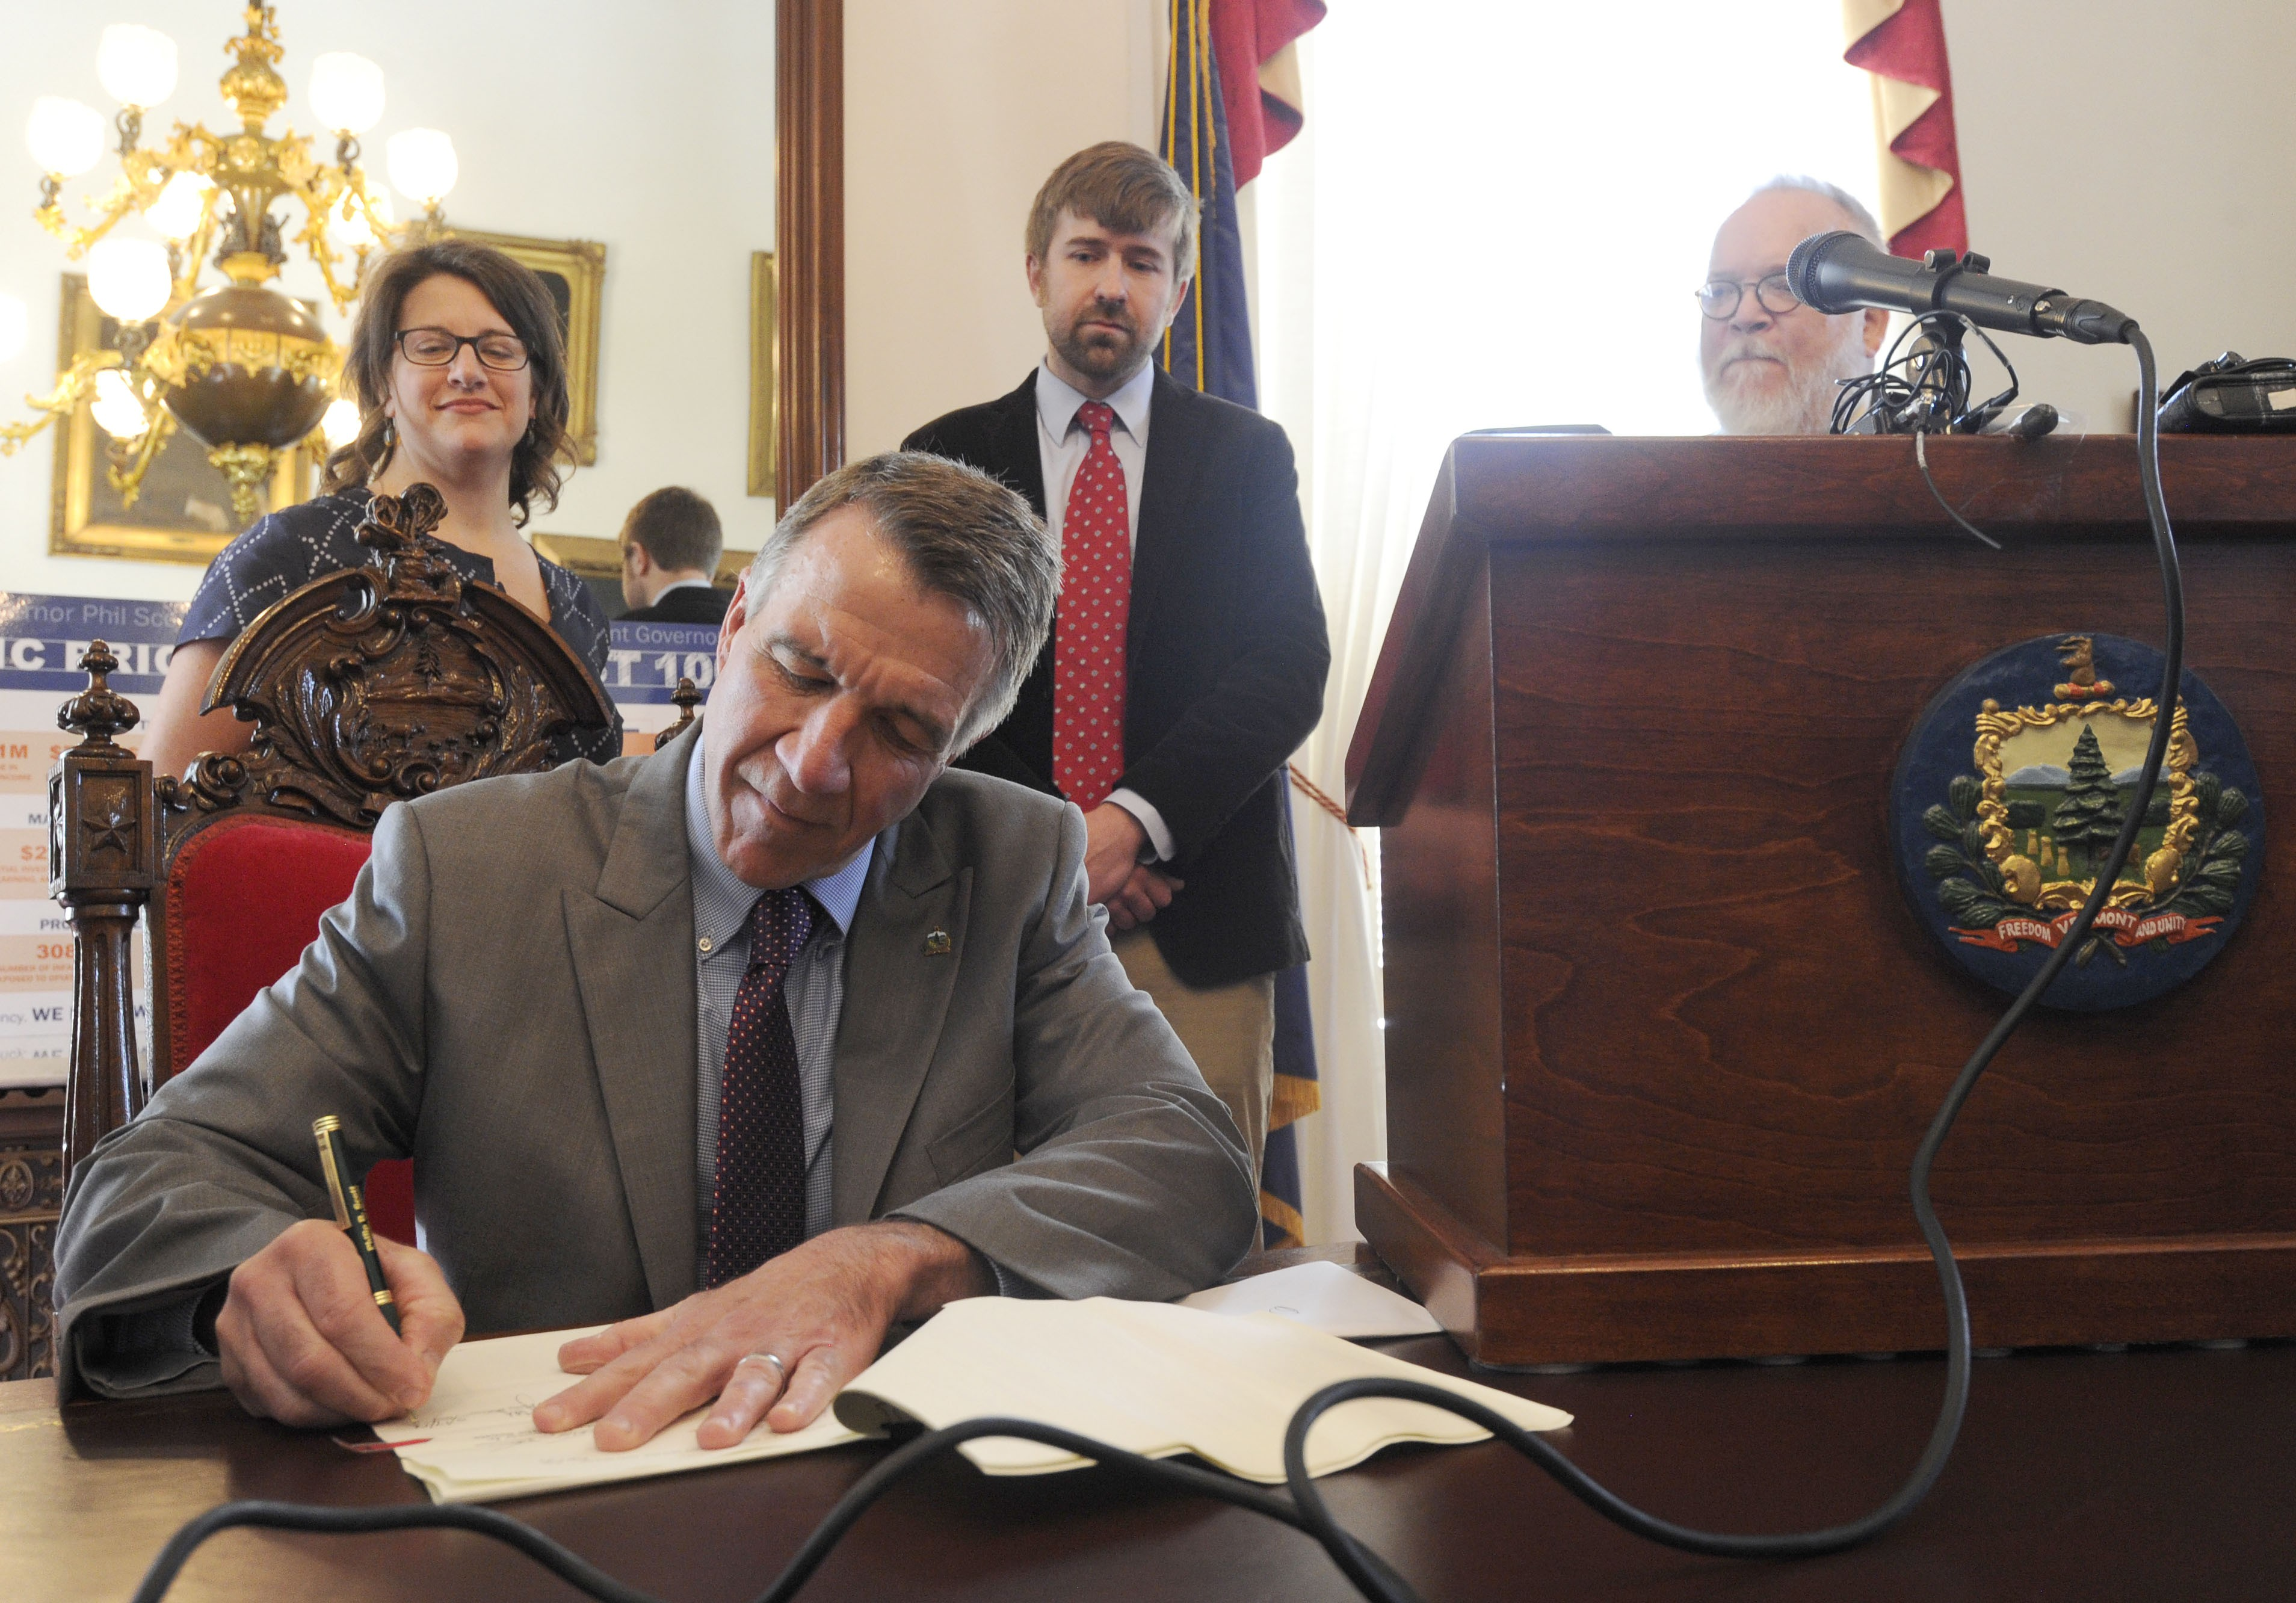 Significant Gun Restrictions Signed into Law By Unlikely Source